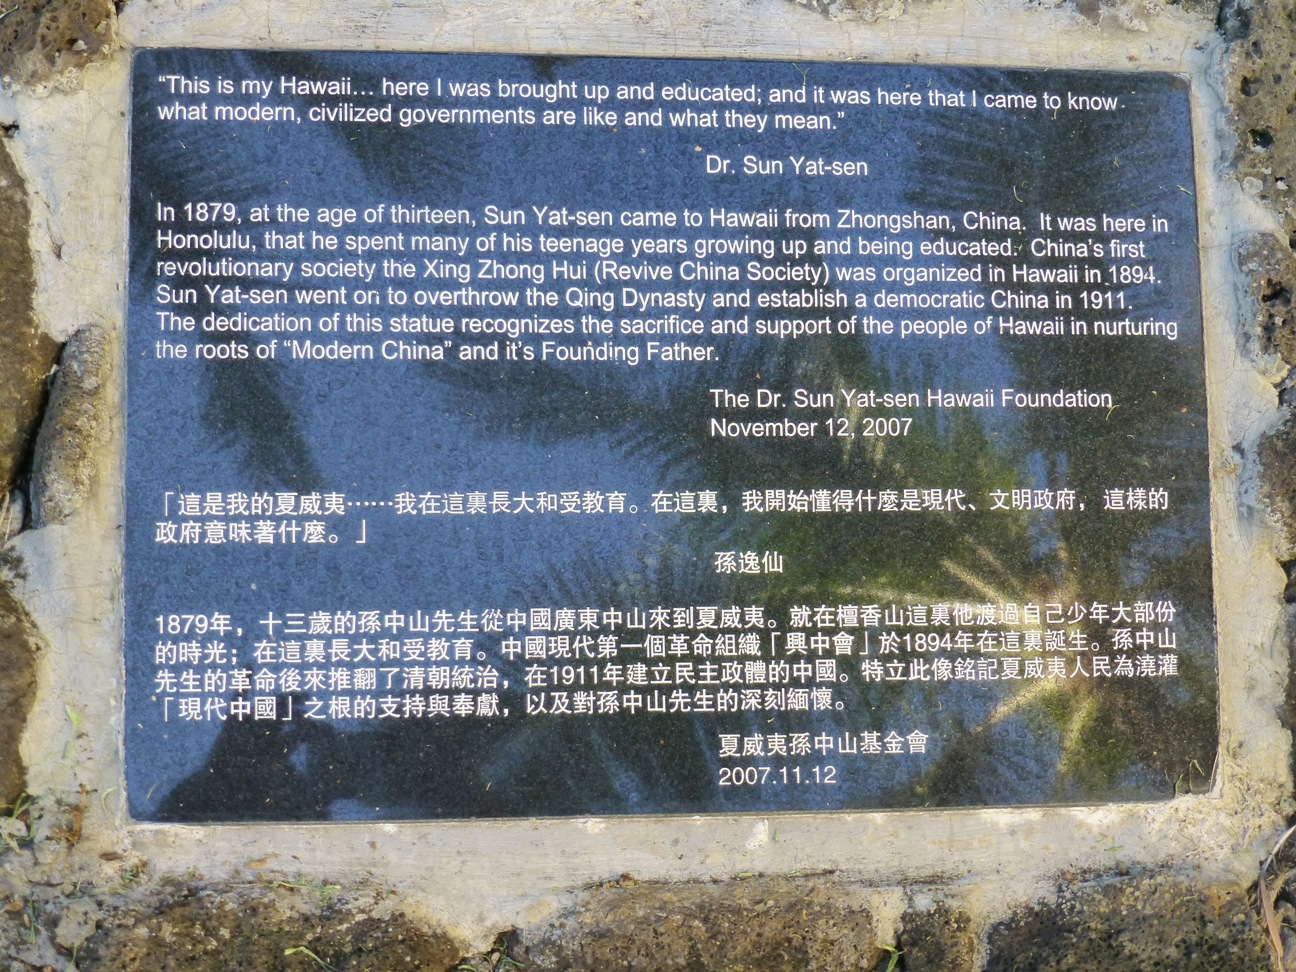 How many Dr  Sun Yat-sen statues are there in Hawai'i? – Sun